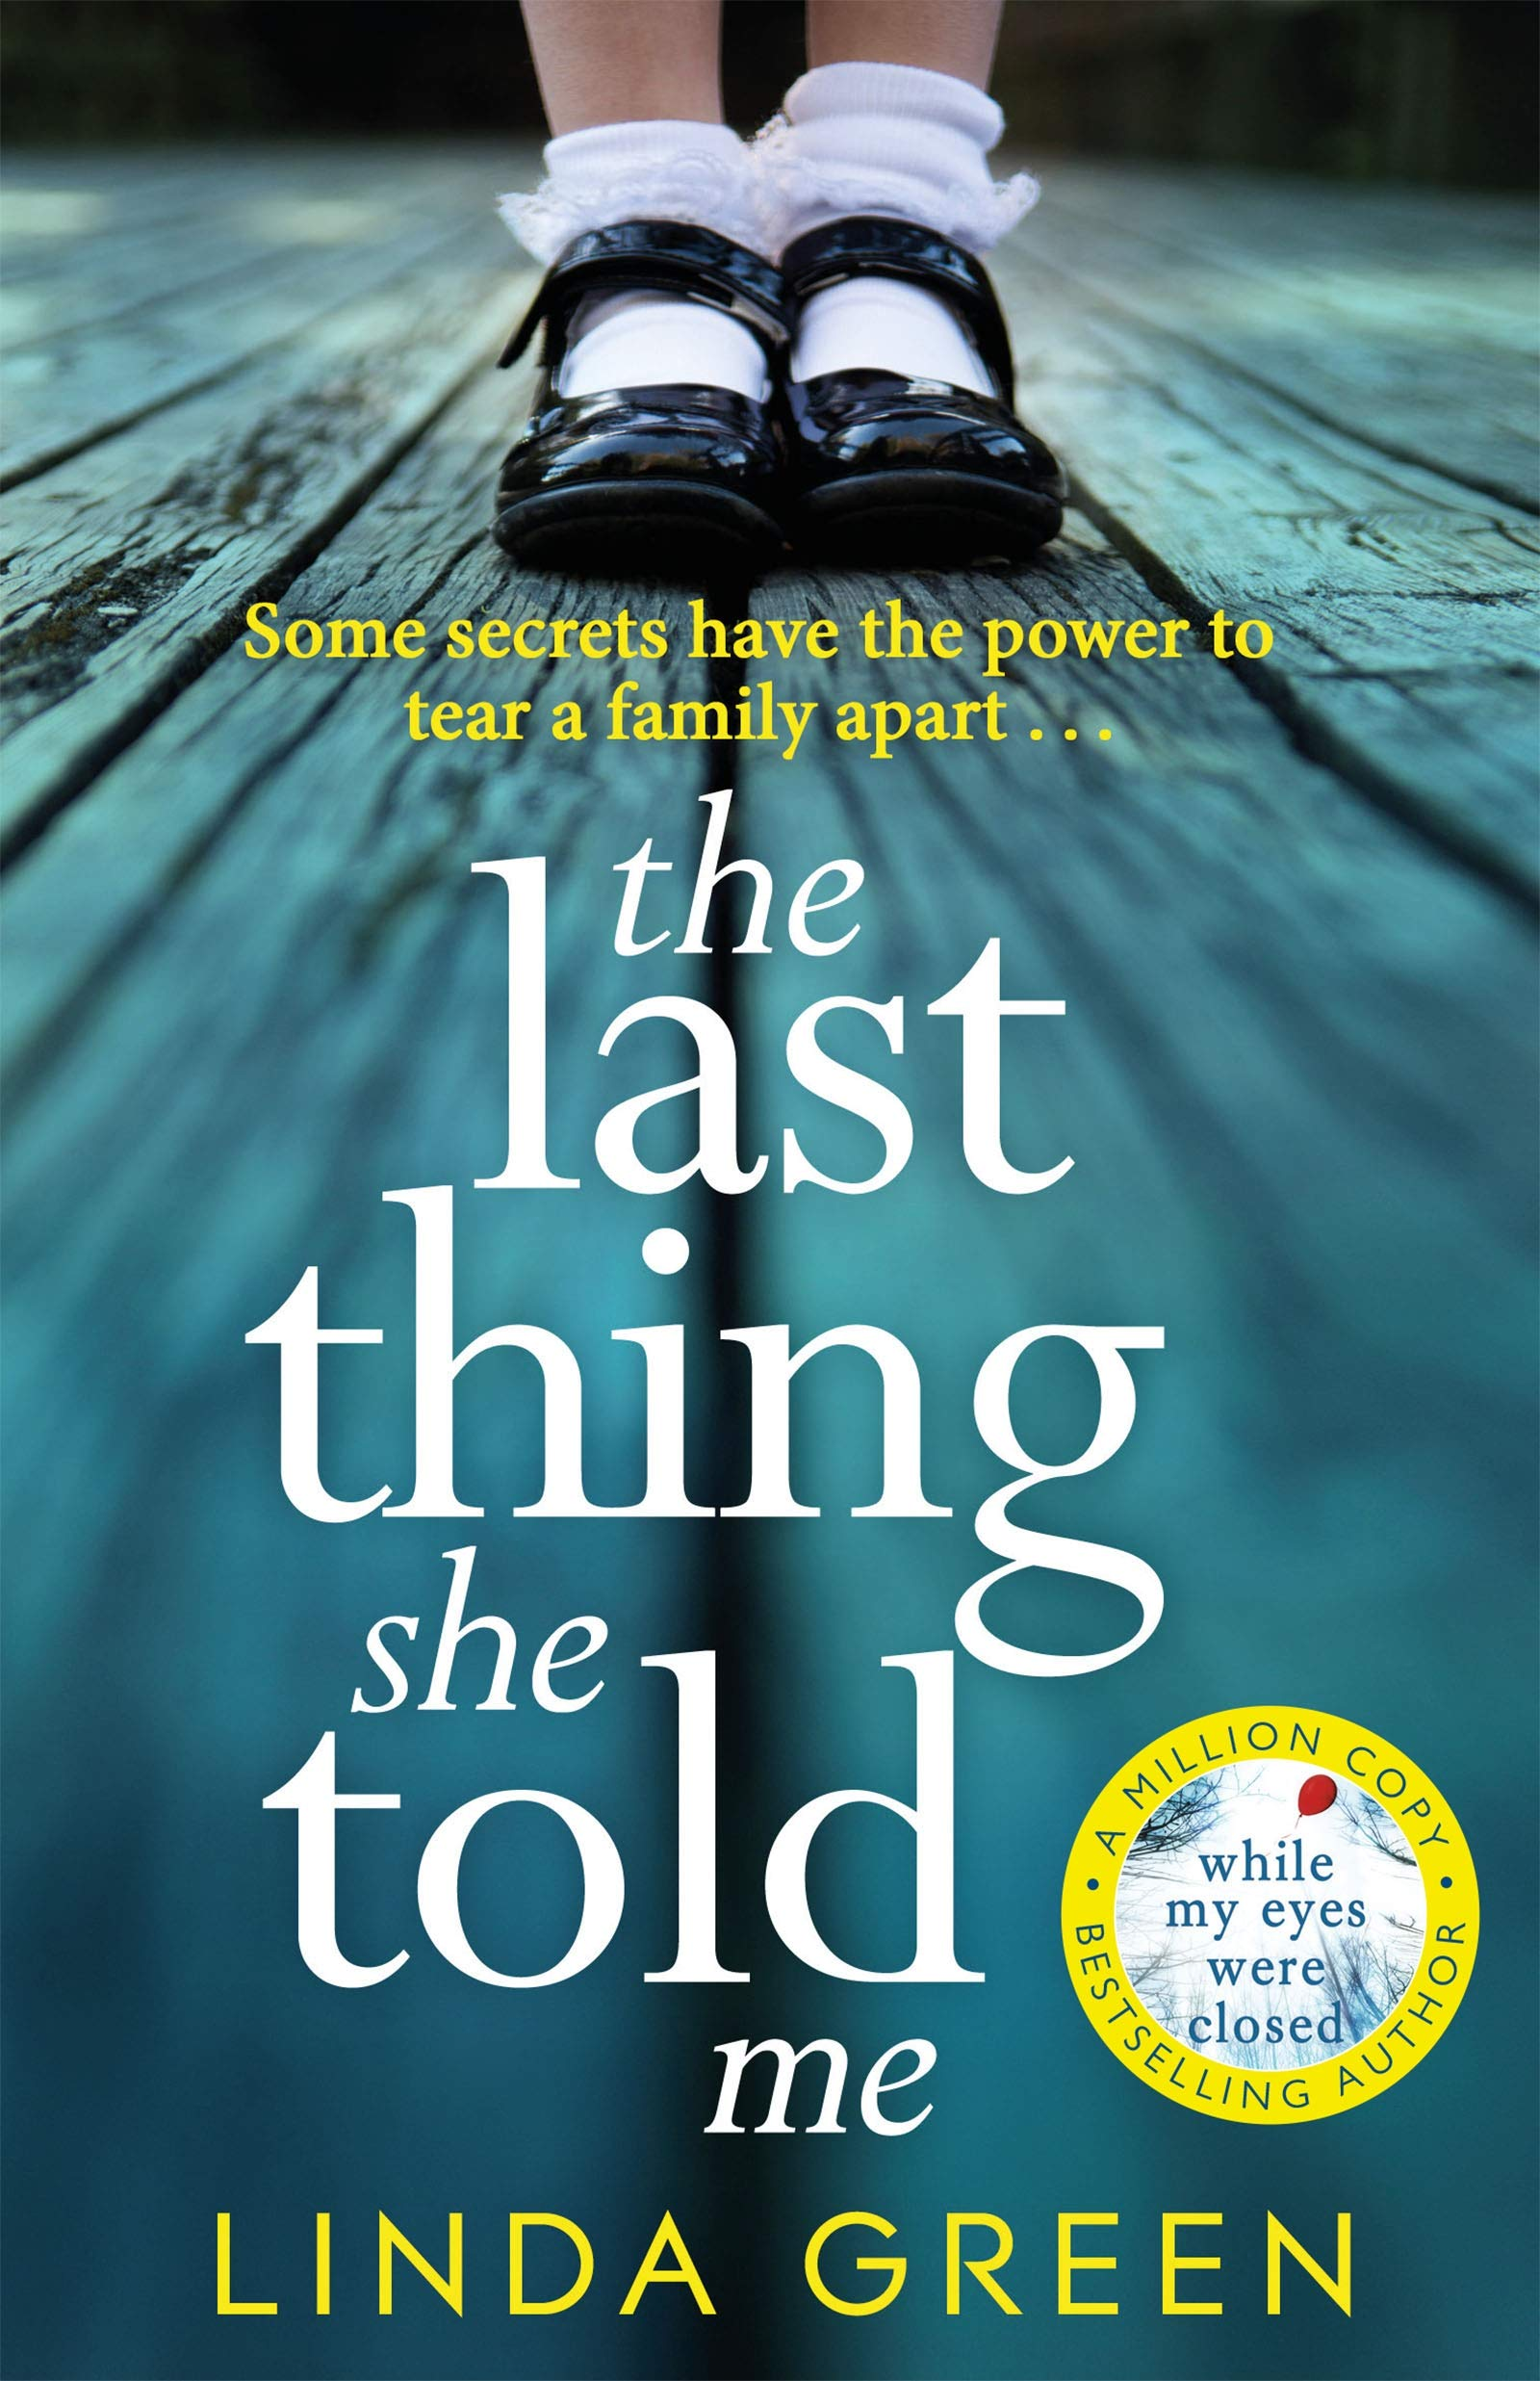 The Last Thing She T...